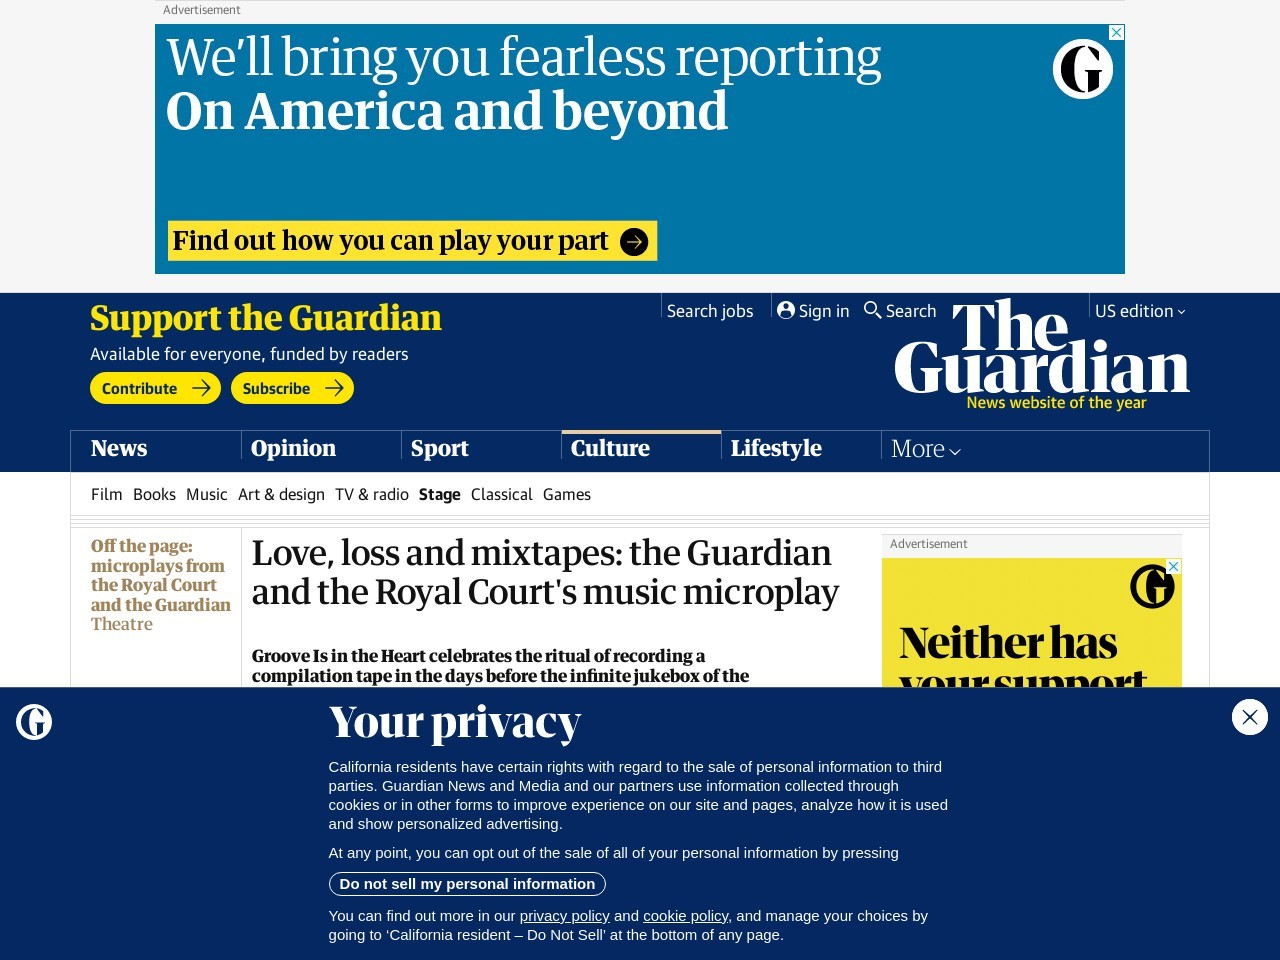 Love, loss and mixtapes: the Guardian and the Royal Court's music microplay